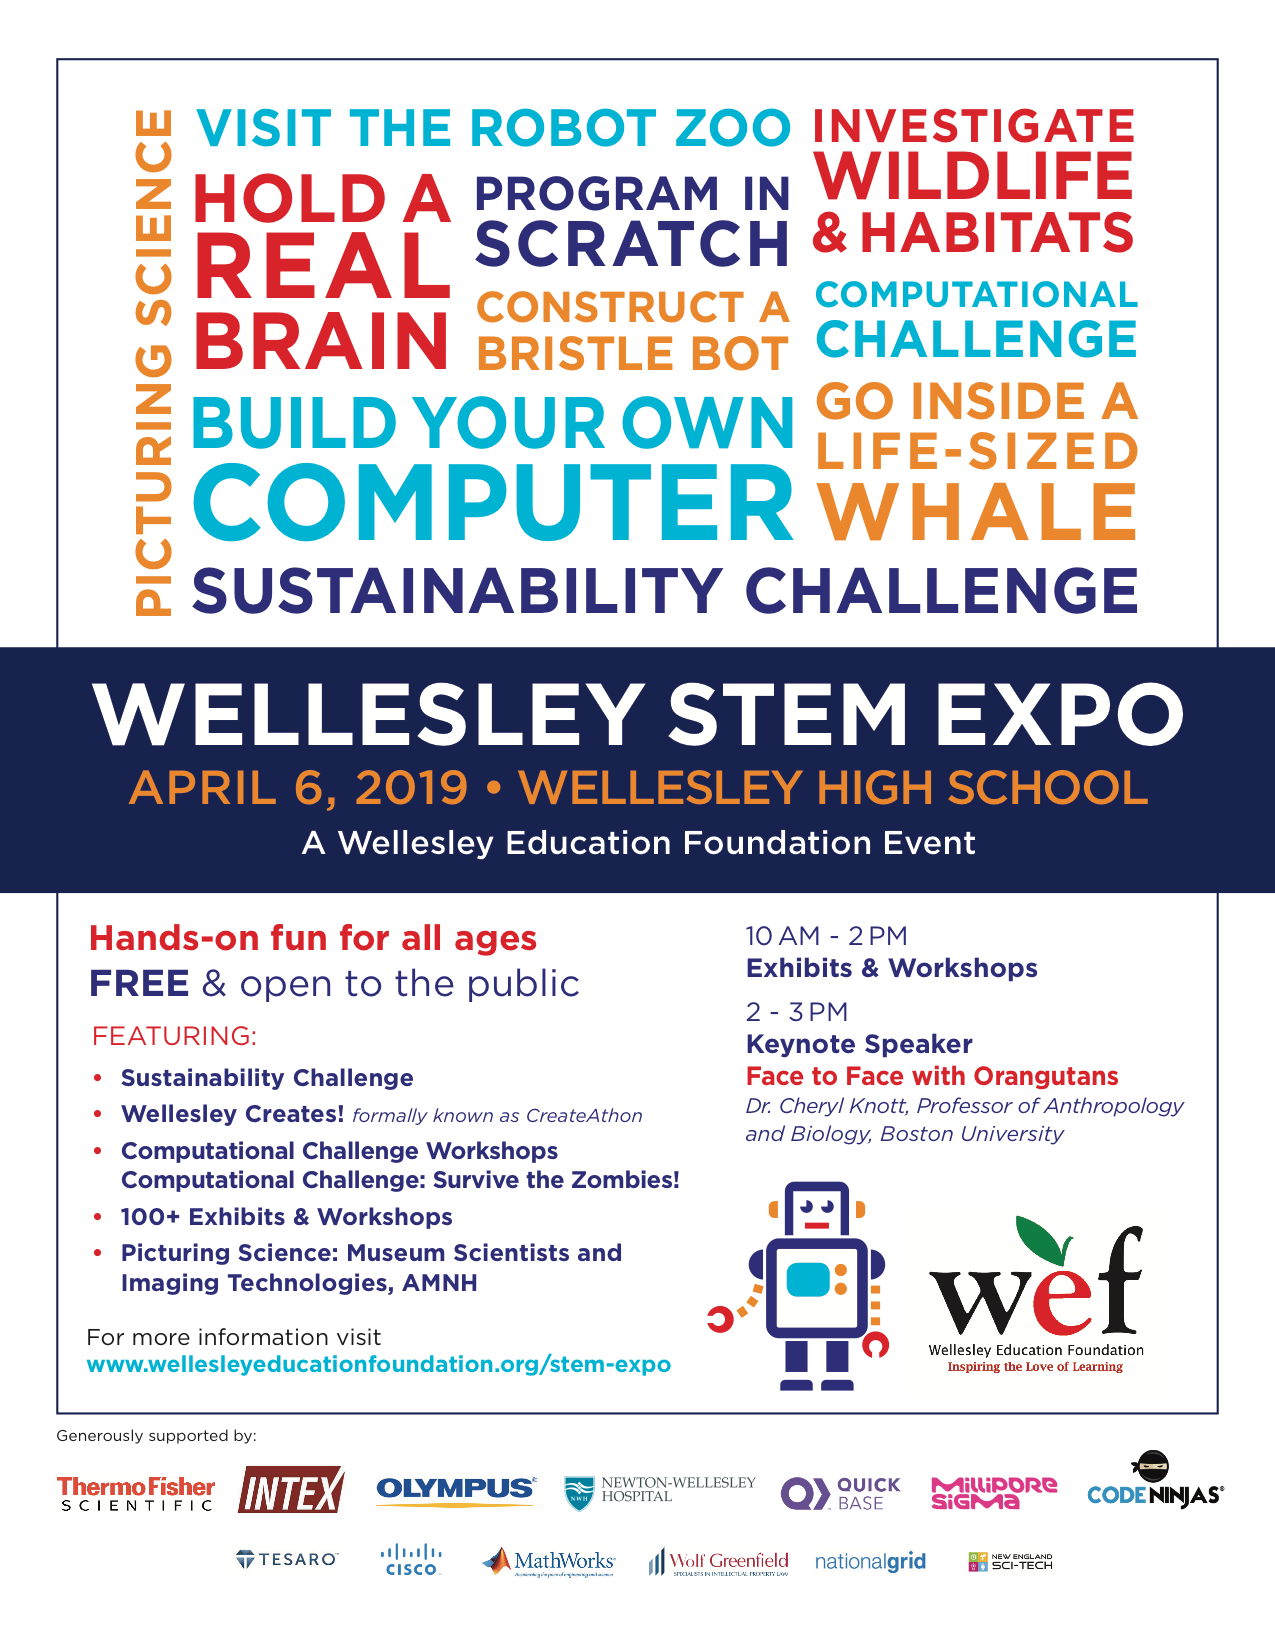 wef stem expo - saturday, april 6, 2019